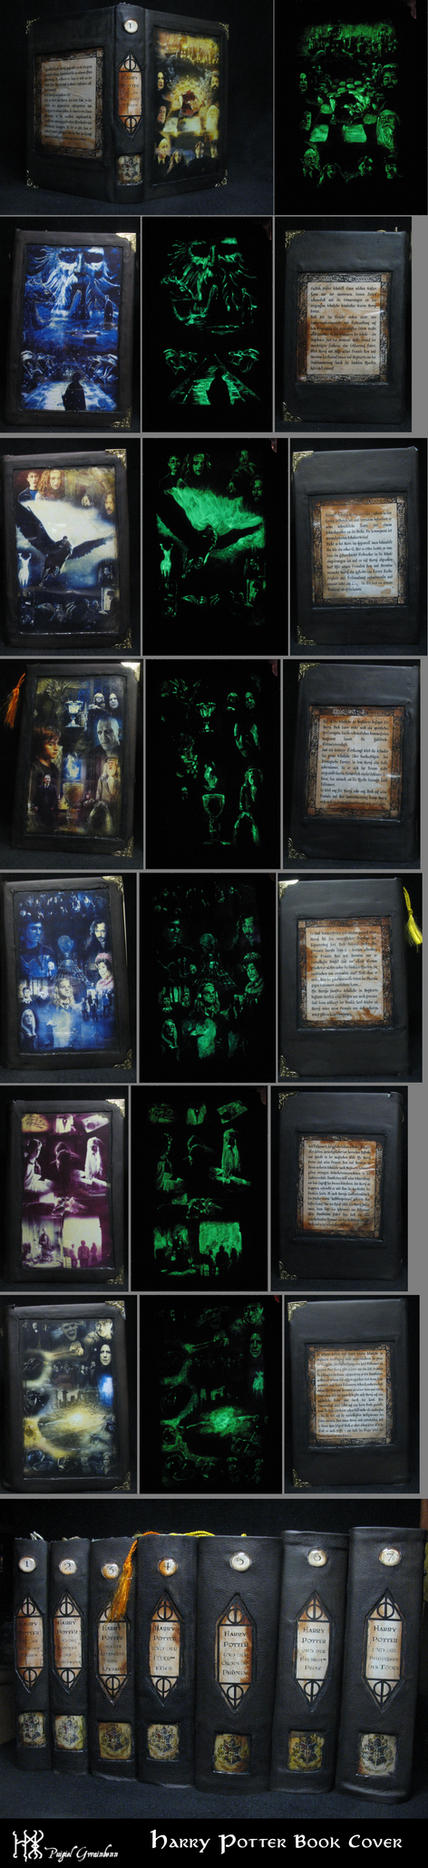 New Harry Potter Book Covers Glow In The Dark : Harry potter book covers by pgwainbenn on deviantart